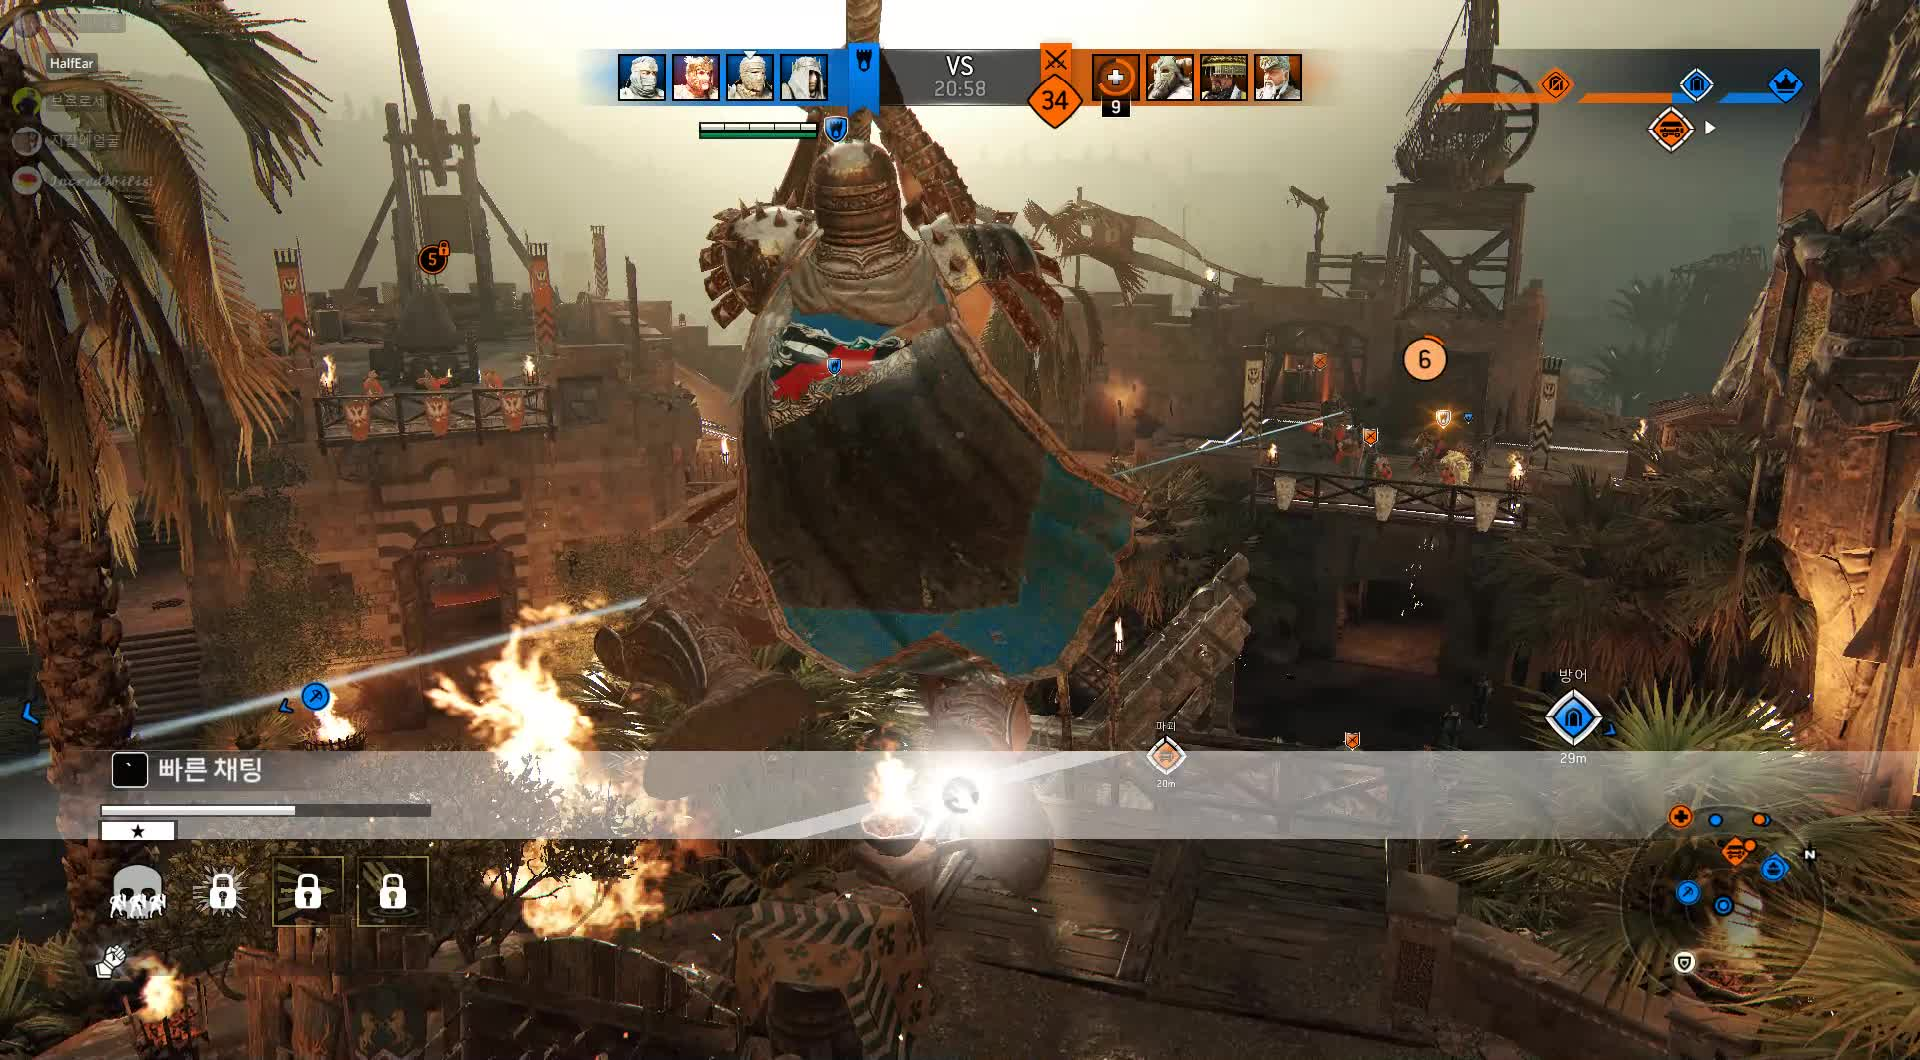 forhonor, For Honor 2019.03.31 - 02.43.06.14.DVR GIFs